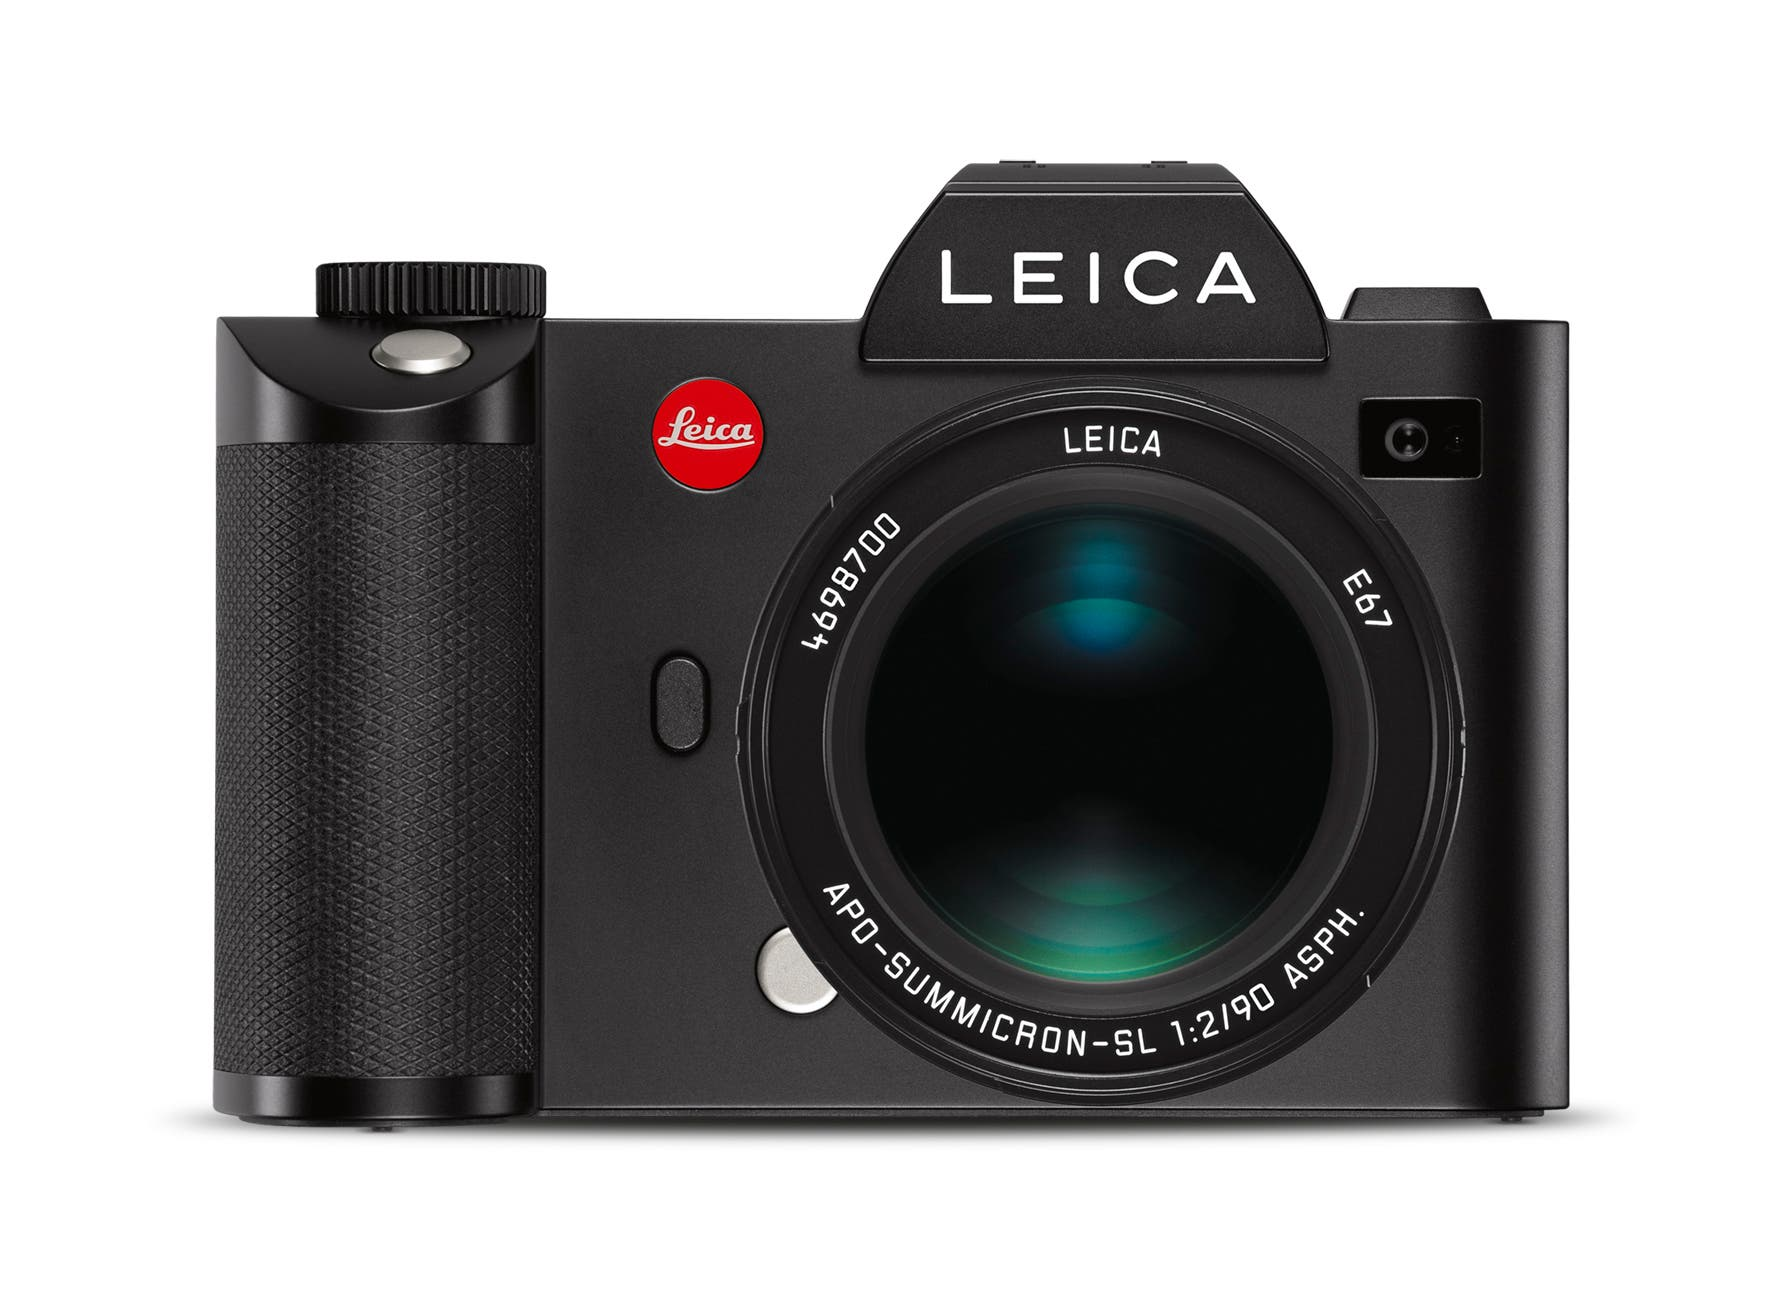 Reports State Panasonic's New Full Frame Mirrorless Camera is a Leica